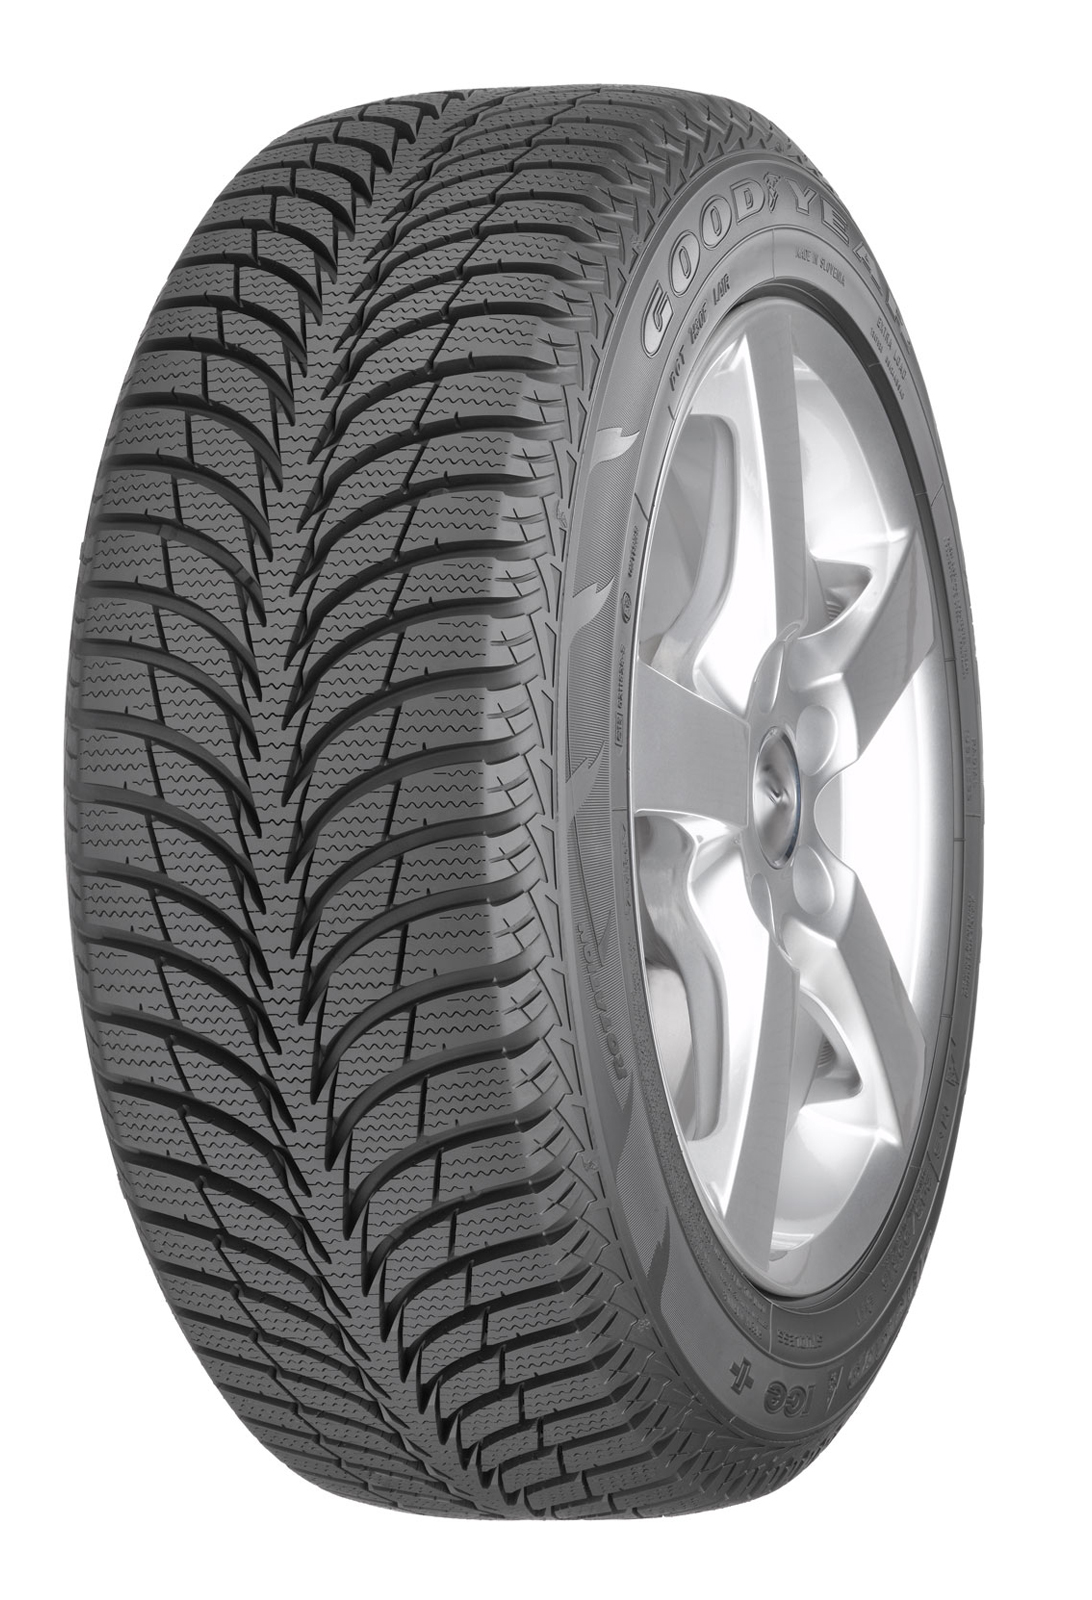 225/55R16 99T Ultra Grip Ice + XL GoodYear